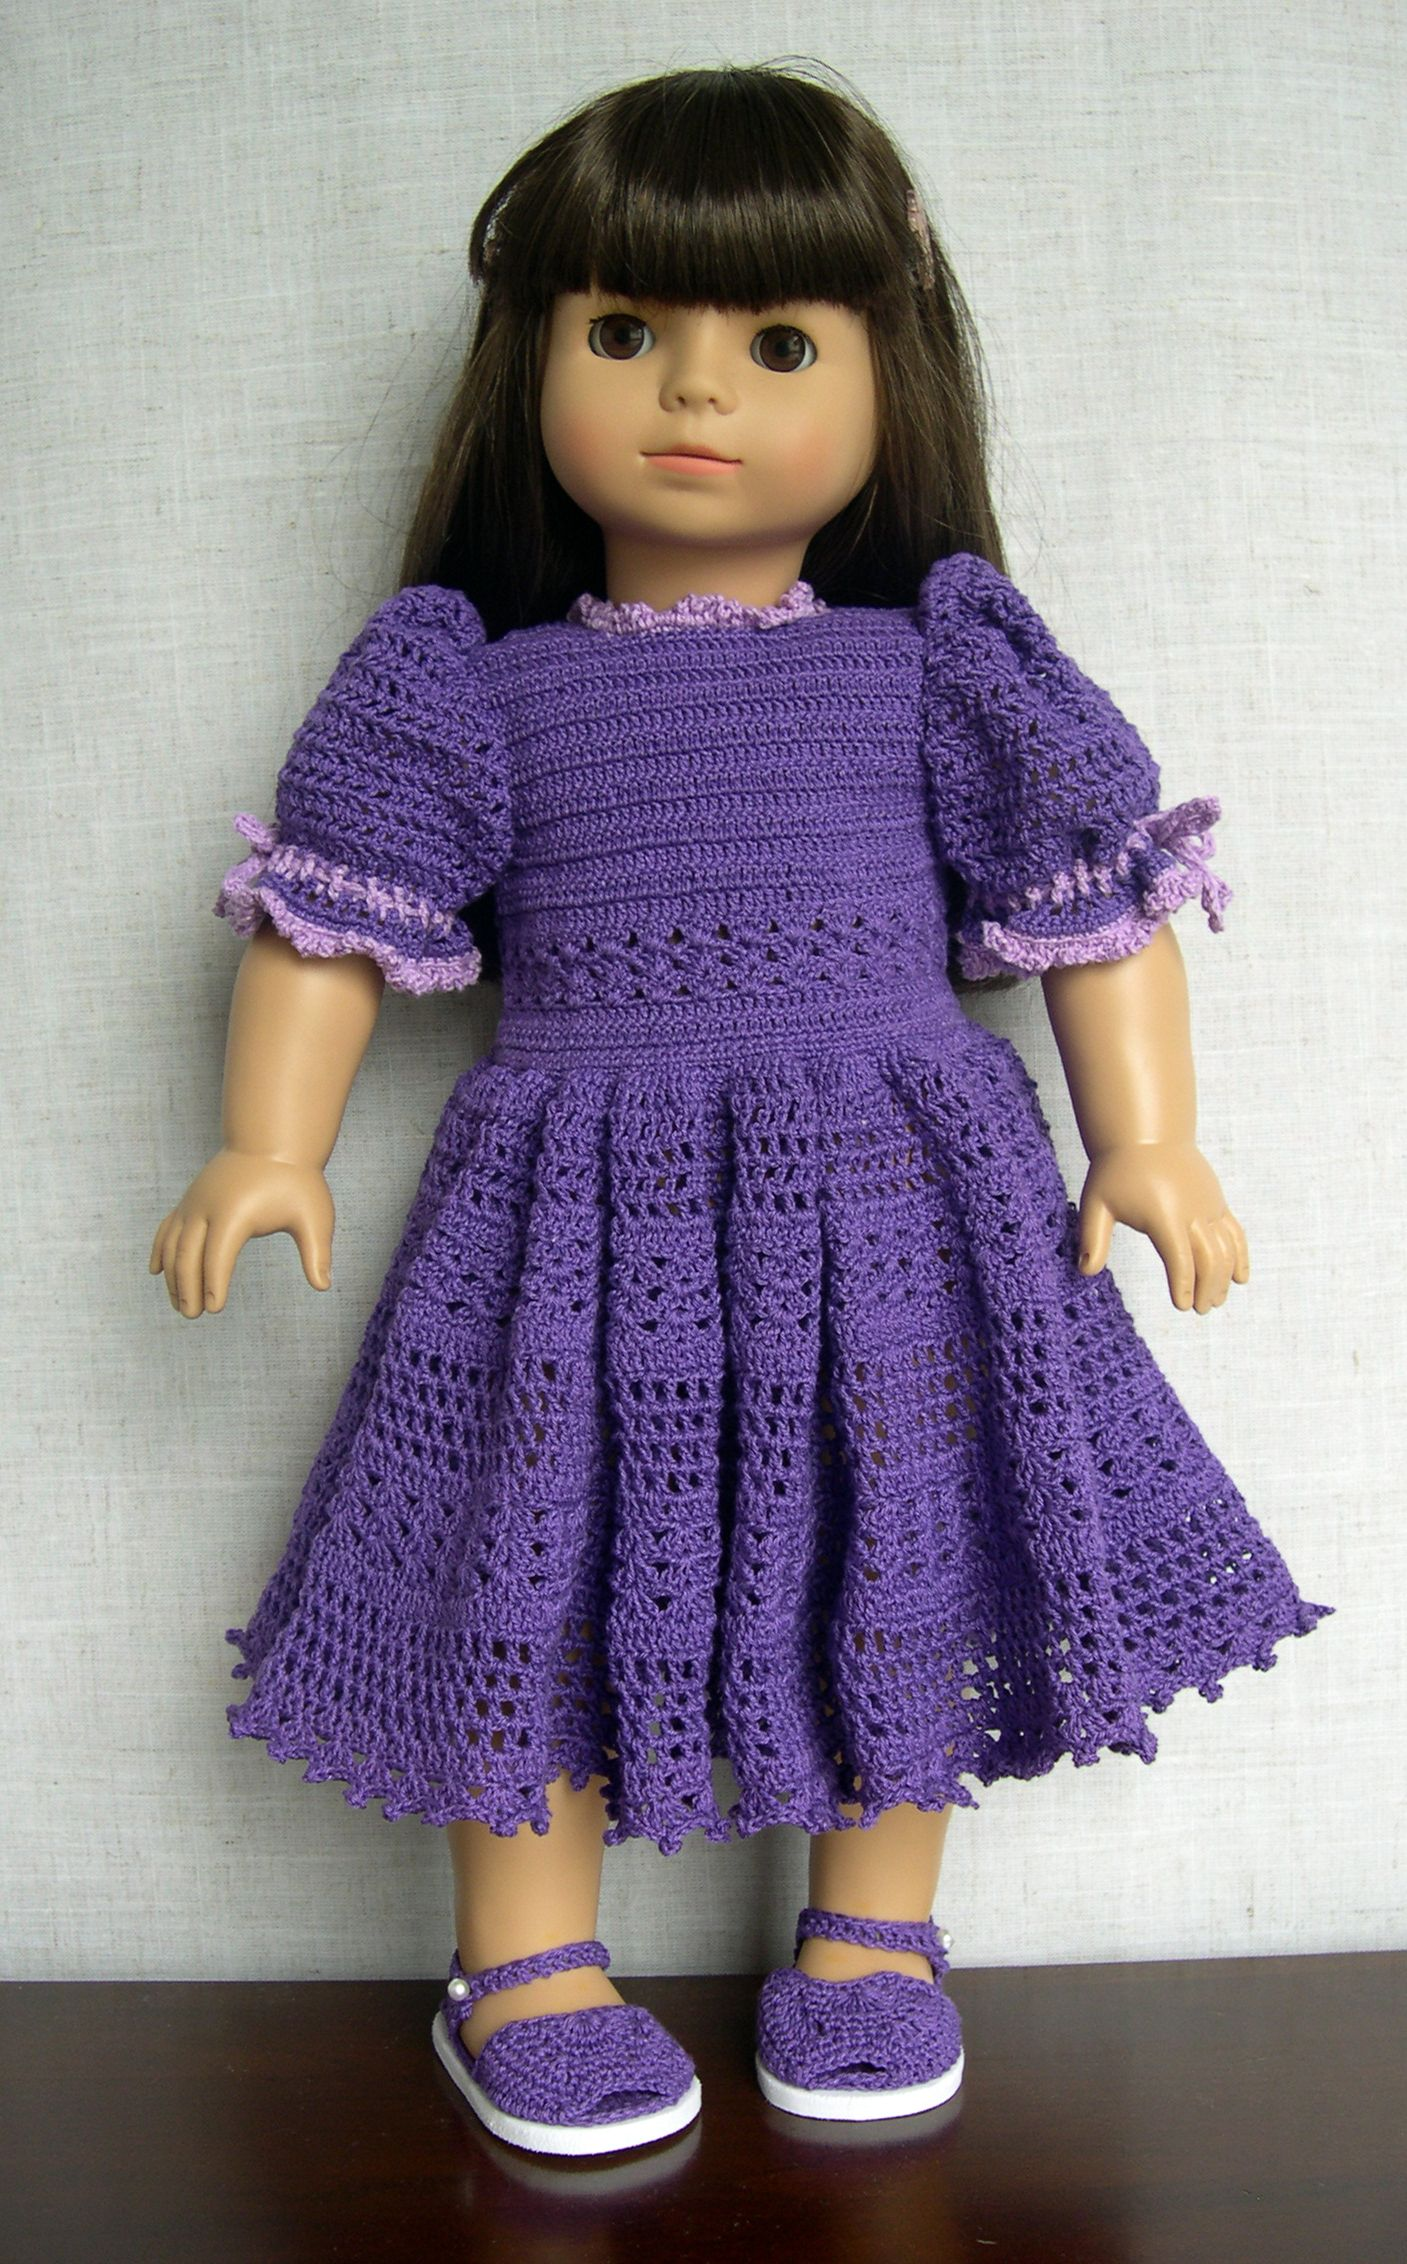 Pin by Ellen Lord on 18 inch doll clothes and accessories | Pinterest